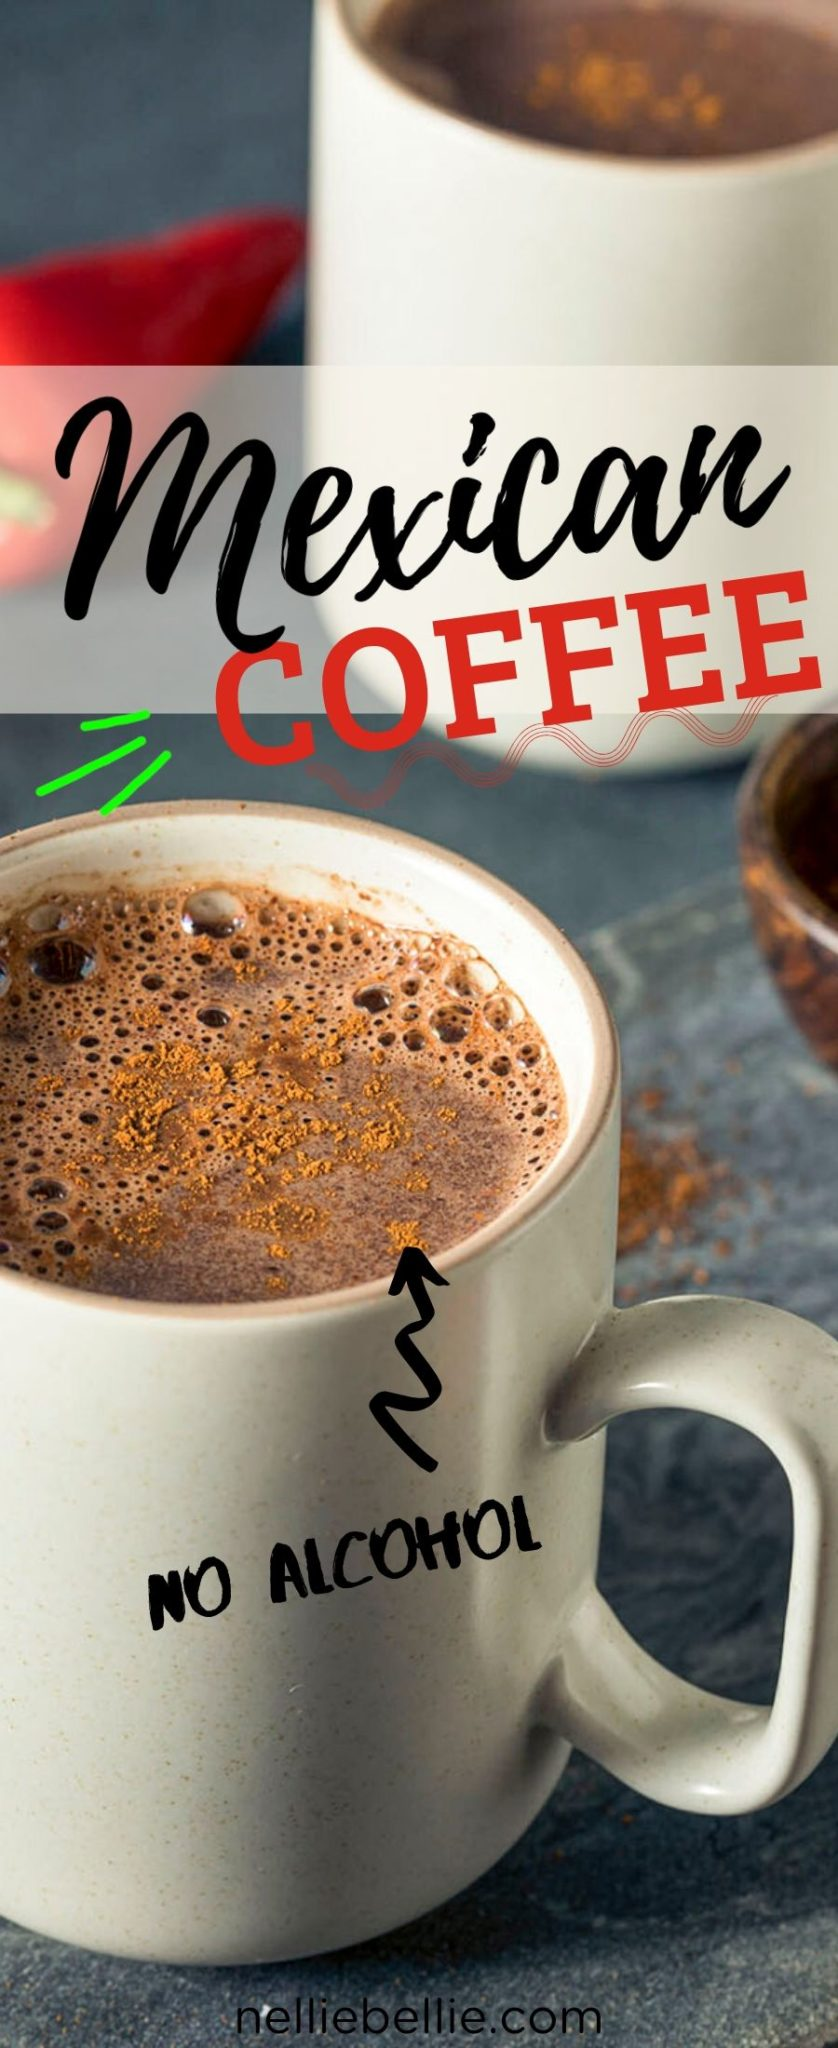 An easy homemade recipe for Hot Mexican Coffee. #coffee #recipe #easy #homemade #hot